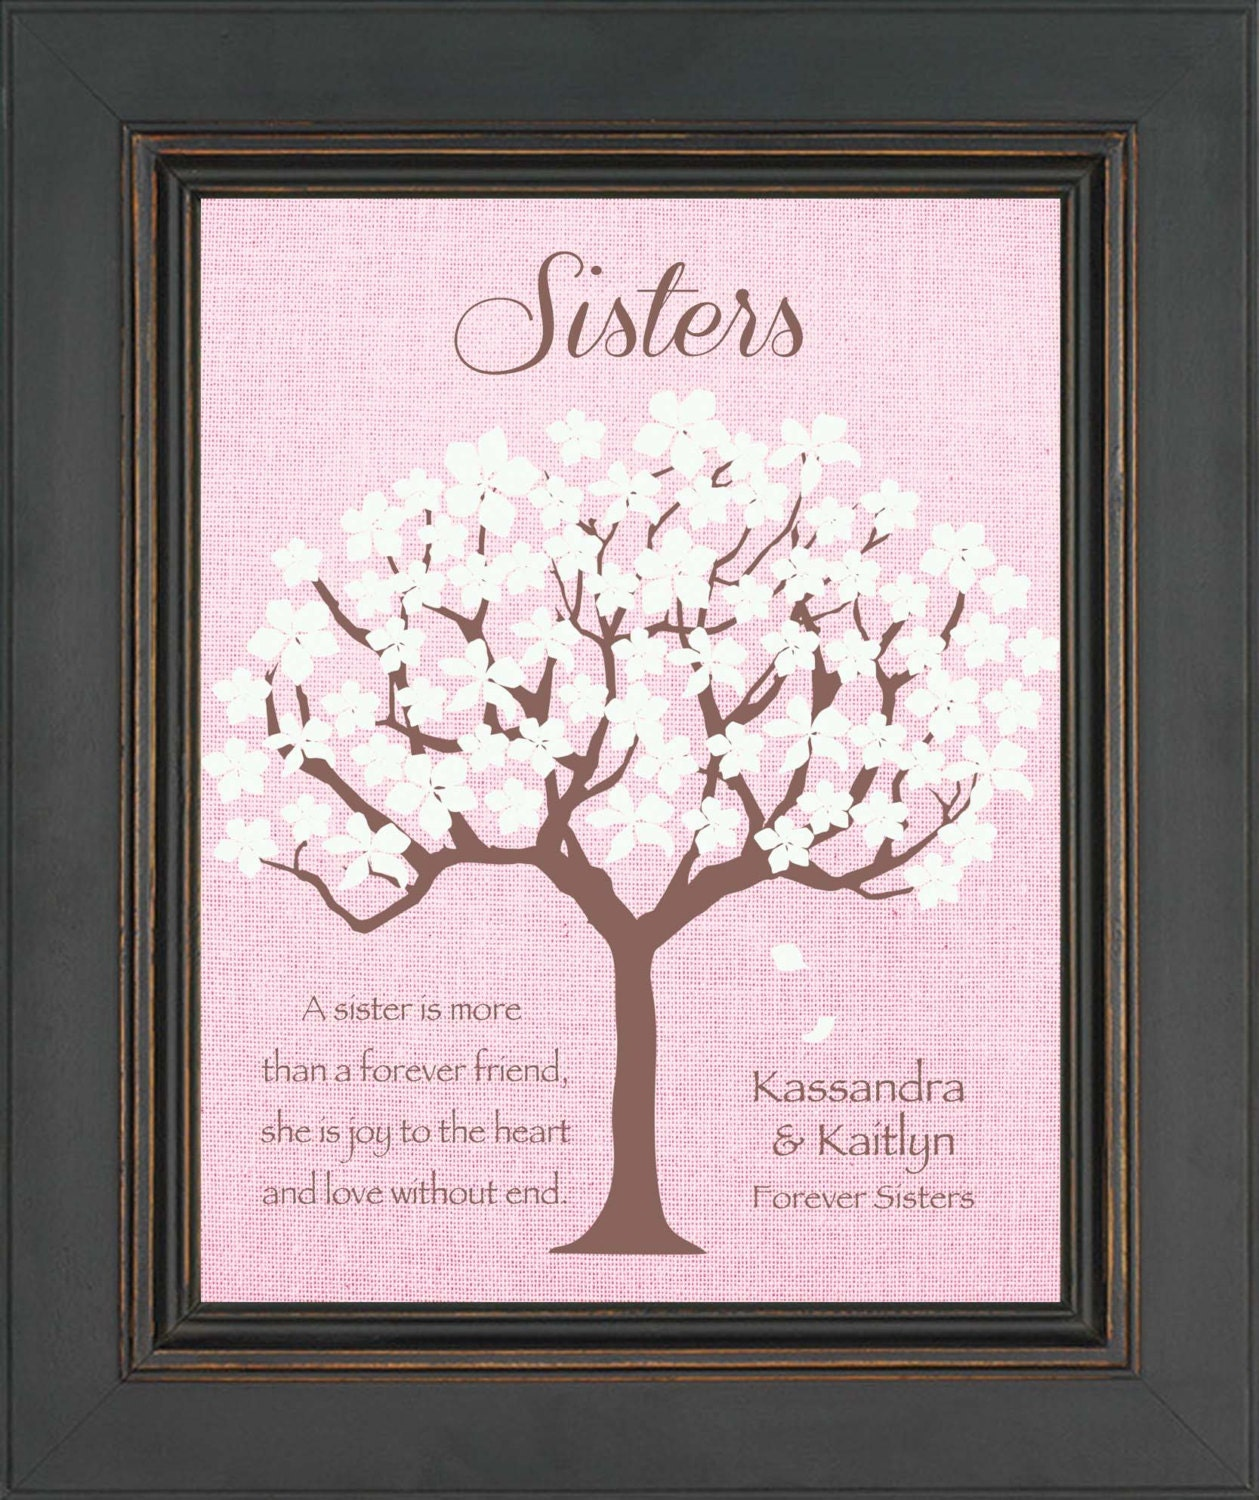 Gifts For Sisters Wedding: SISTERS Personalized Gift Birthday Gift For Sister Wedding